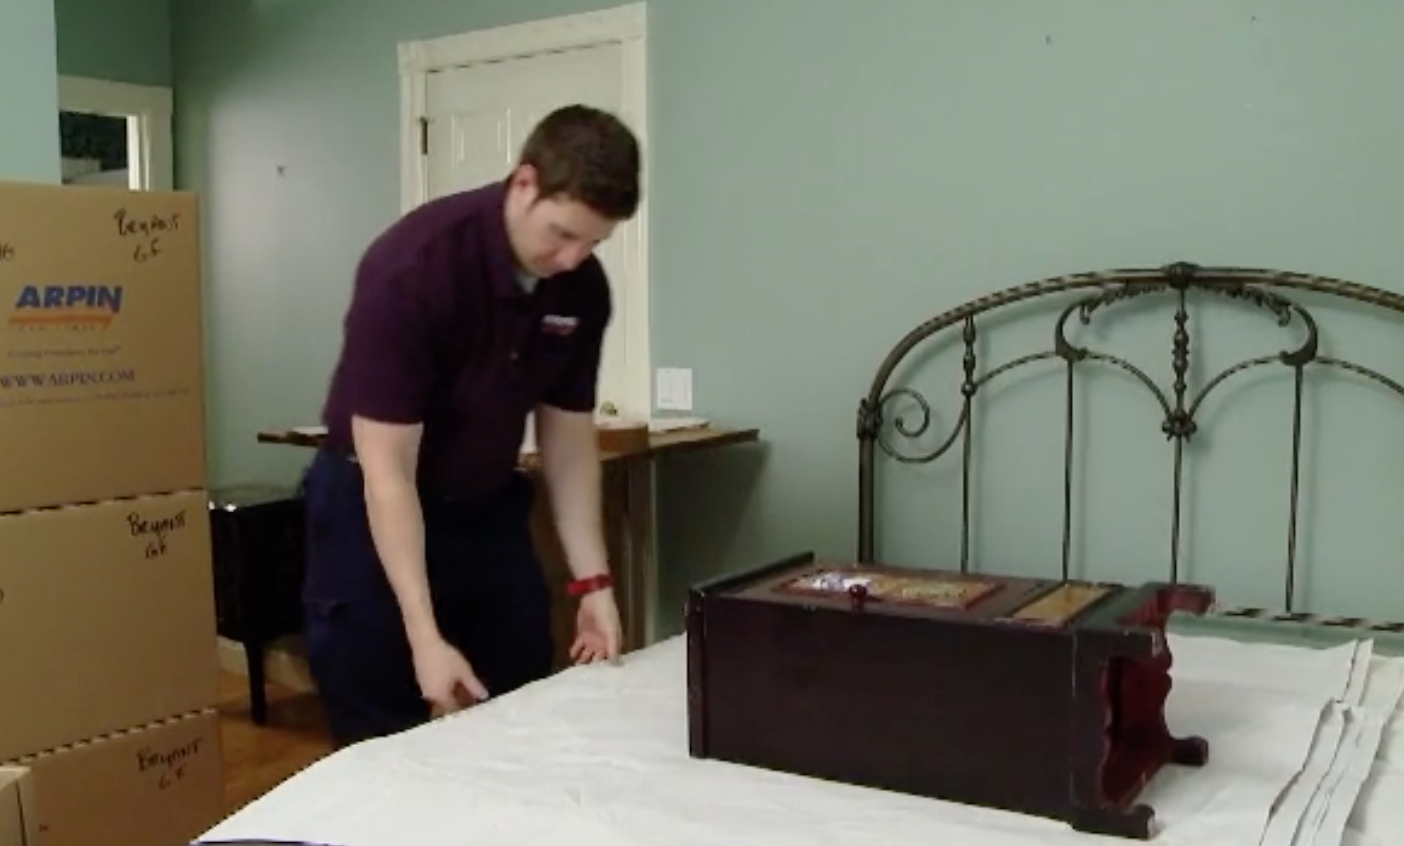 Arpin of RI packer packing a night stand with its drawer in a carton.